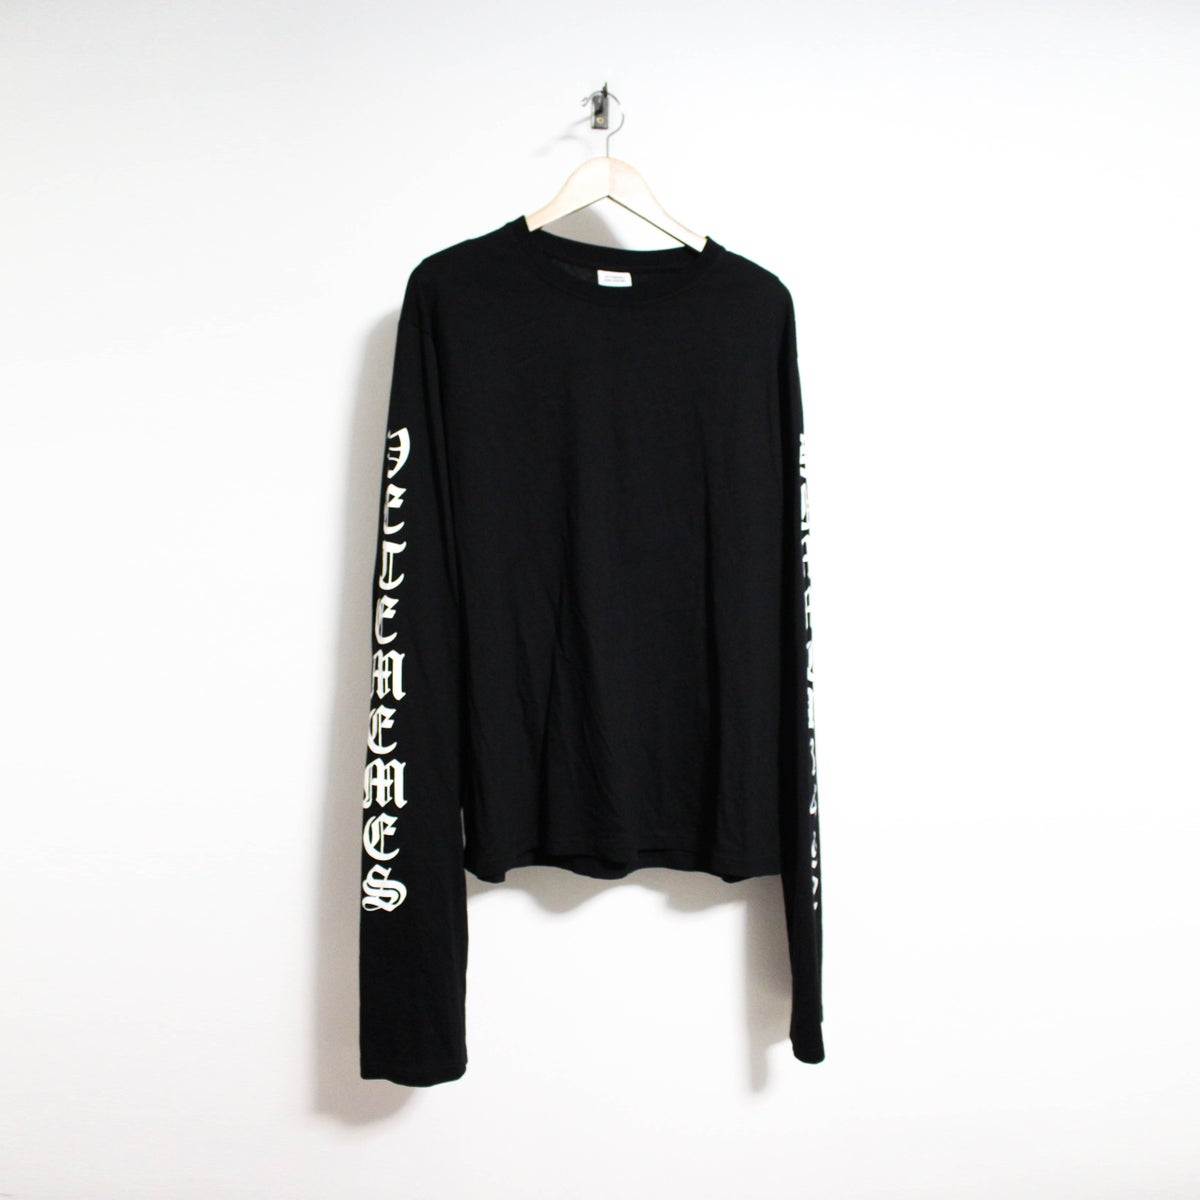 Image of Black Long Sleeve Shirt [PRE-ORDER]